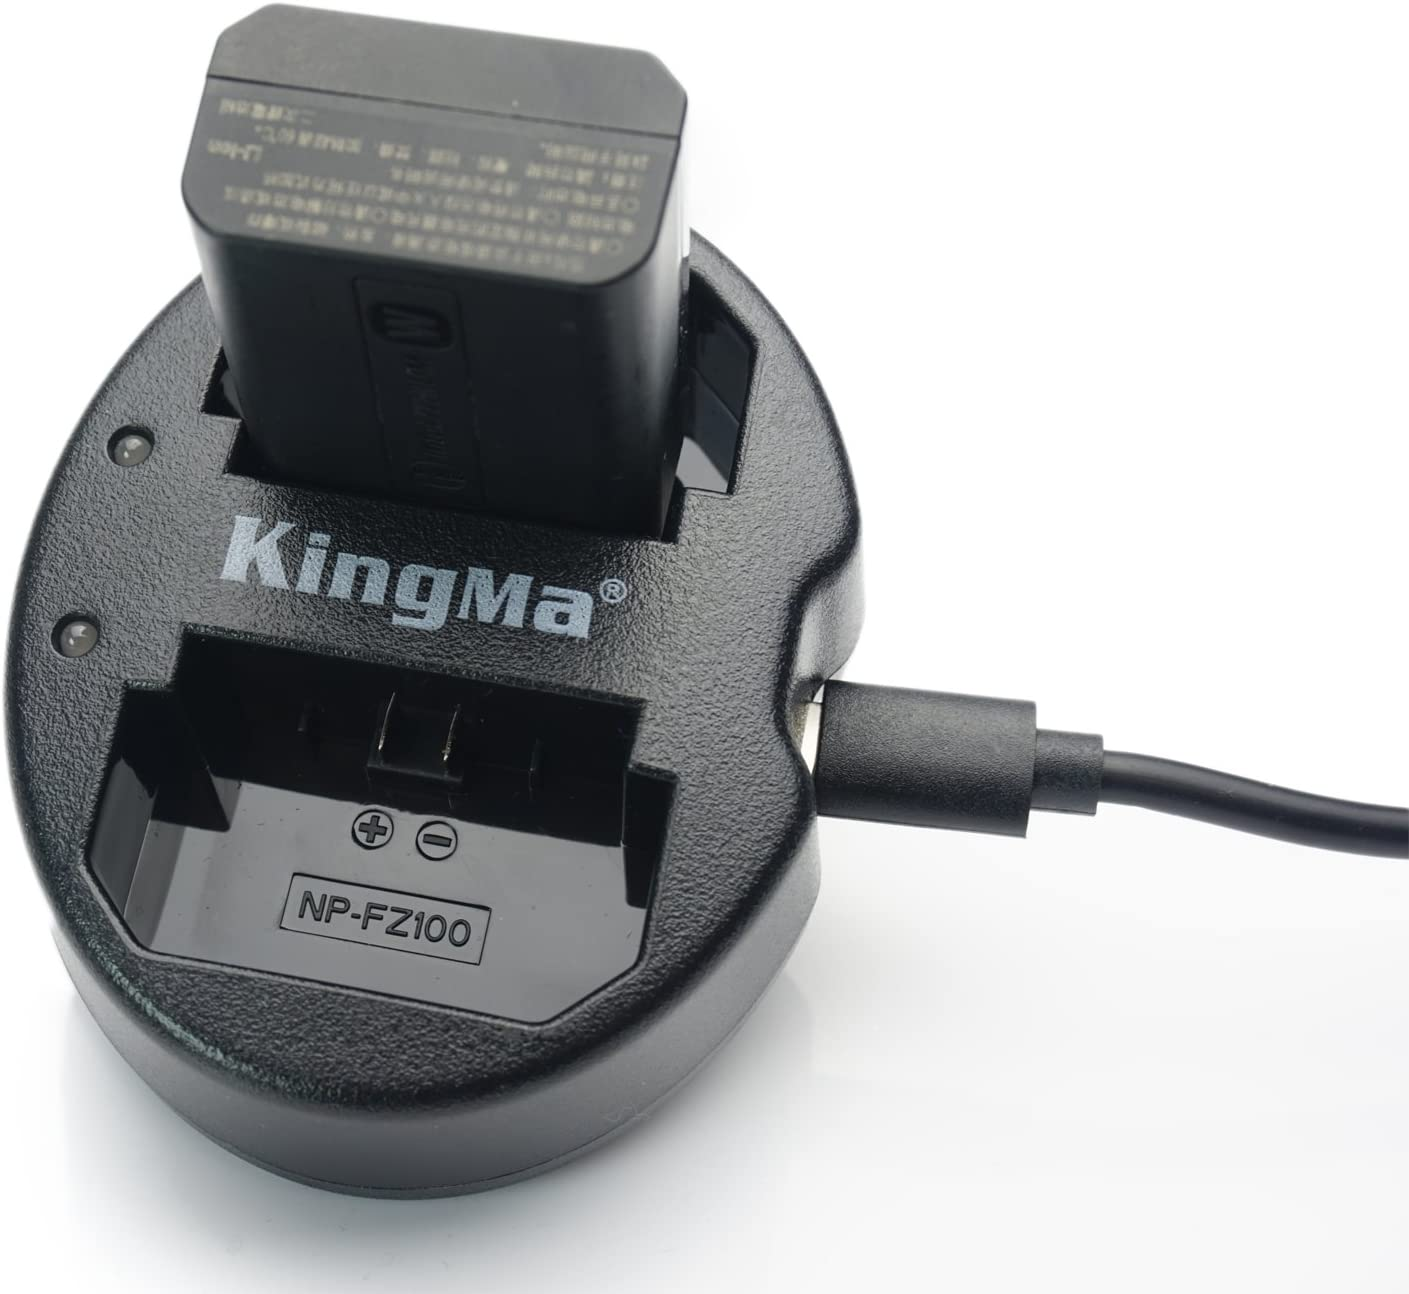 King Ma Dual USB Battery Charger for Sony NP-FZ100,Compatible with Sony A7III, Sony A7M3 Sony A9,Sony A7S3, Sony A7RIII A7R3